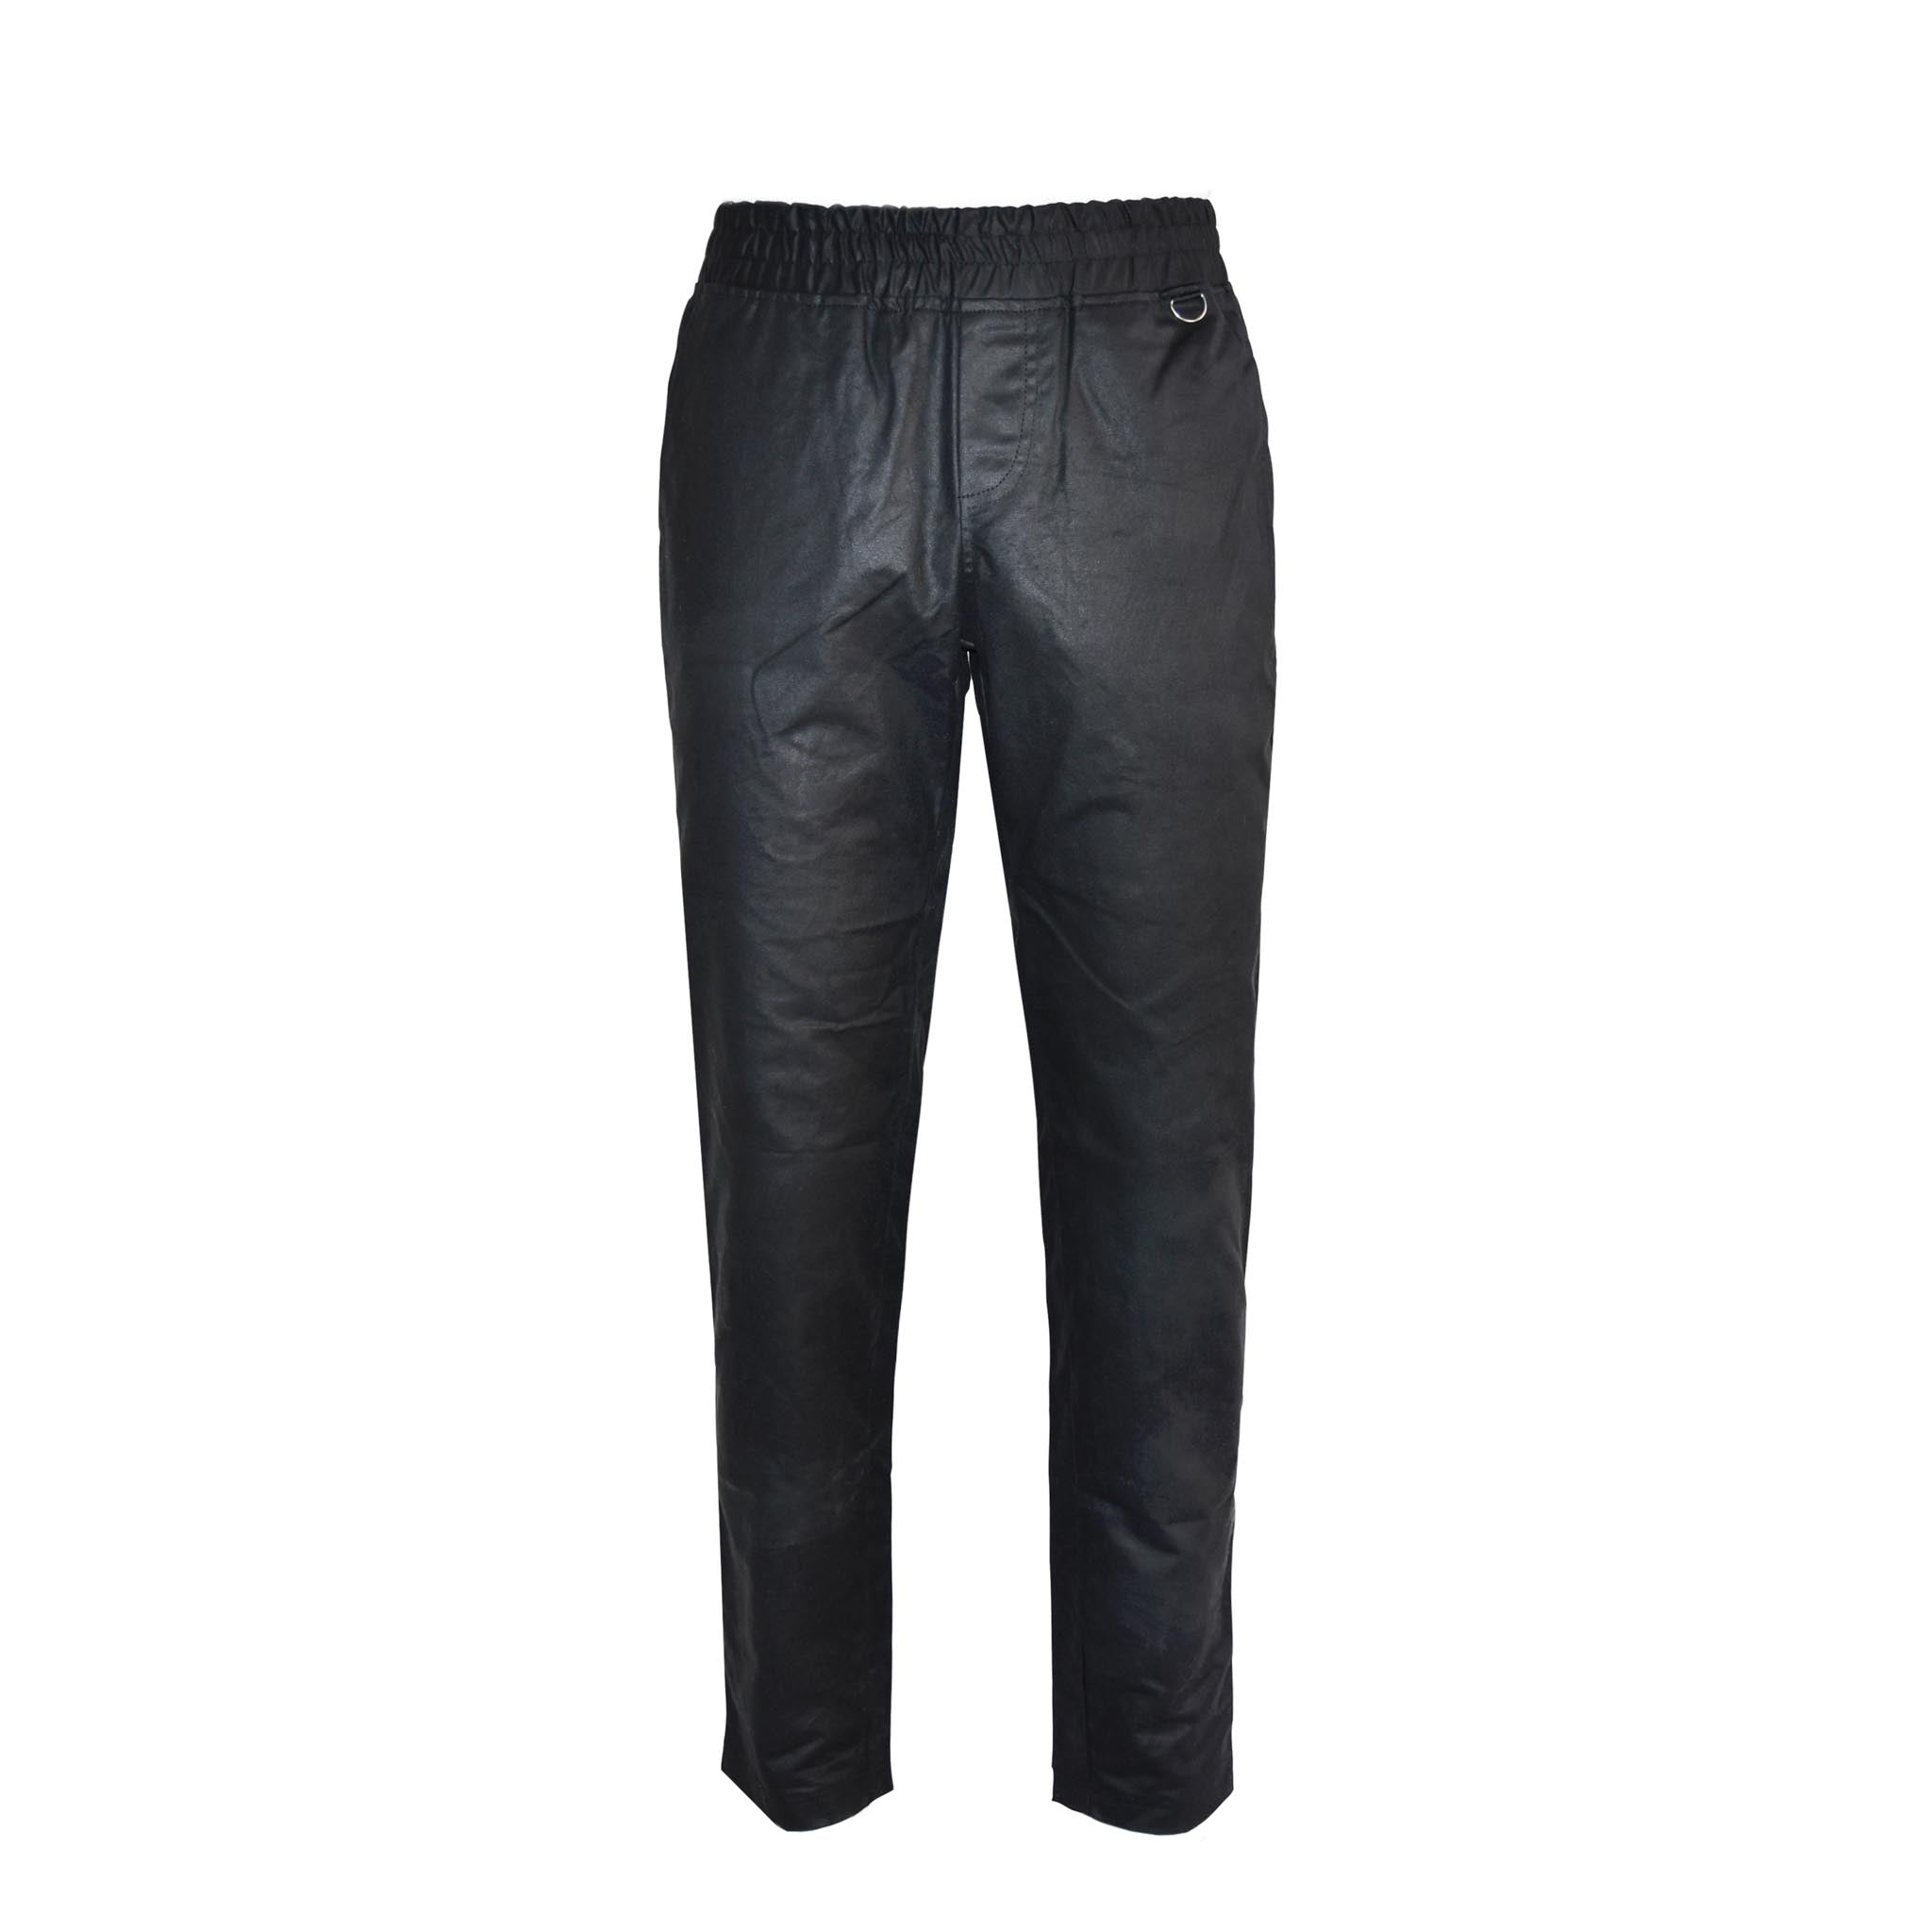 Habits Studios Waxed Cotton Track Pant